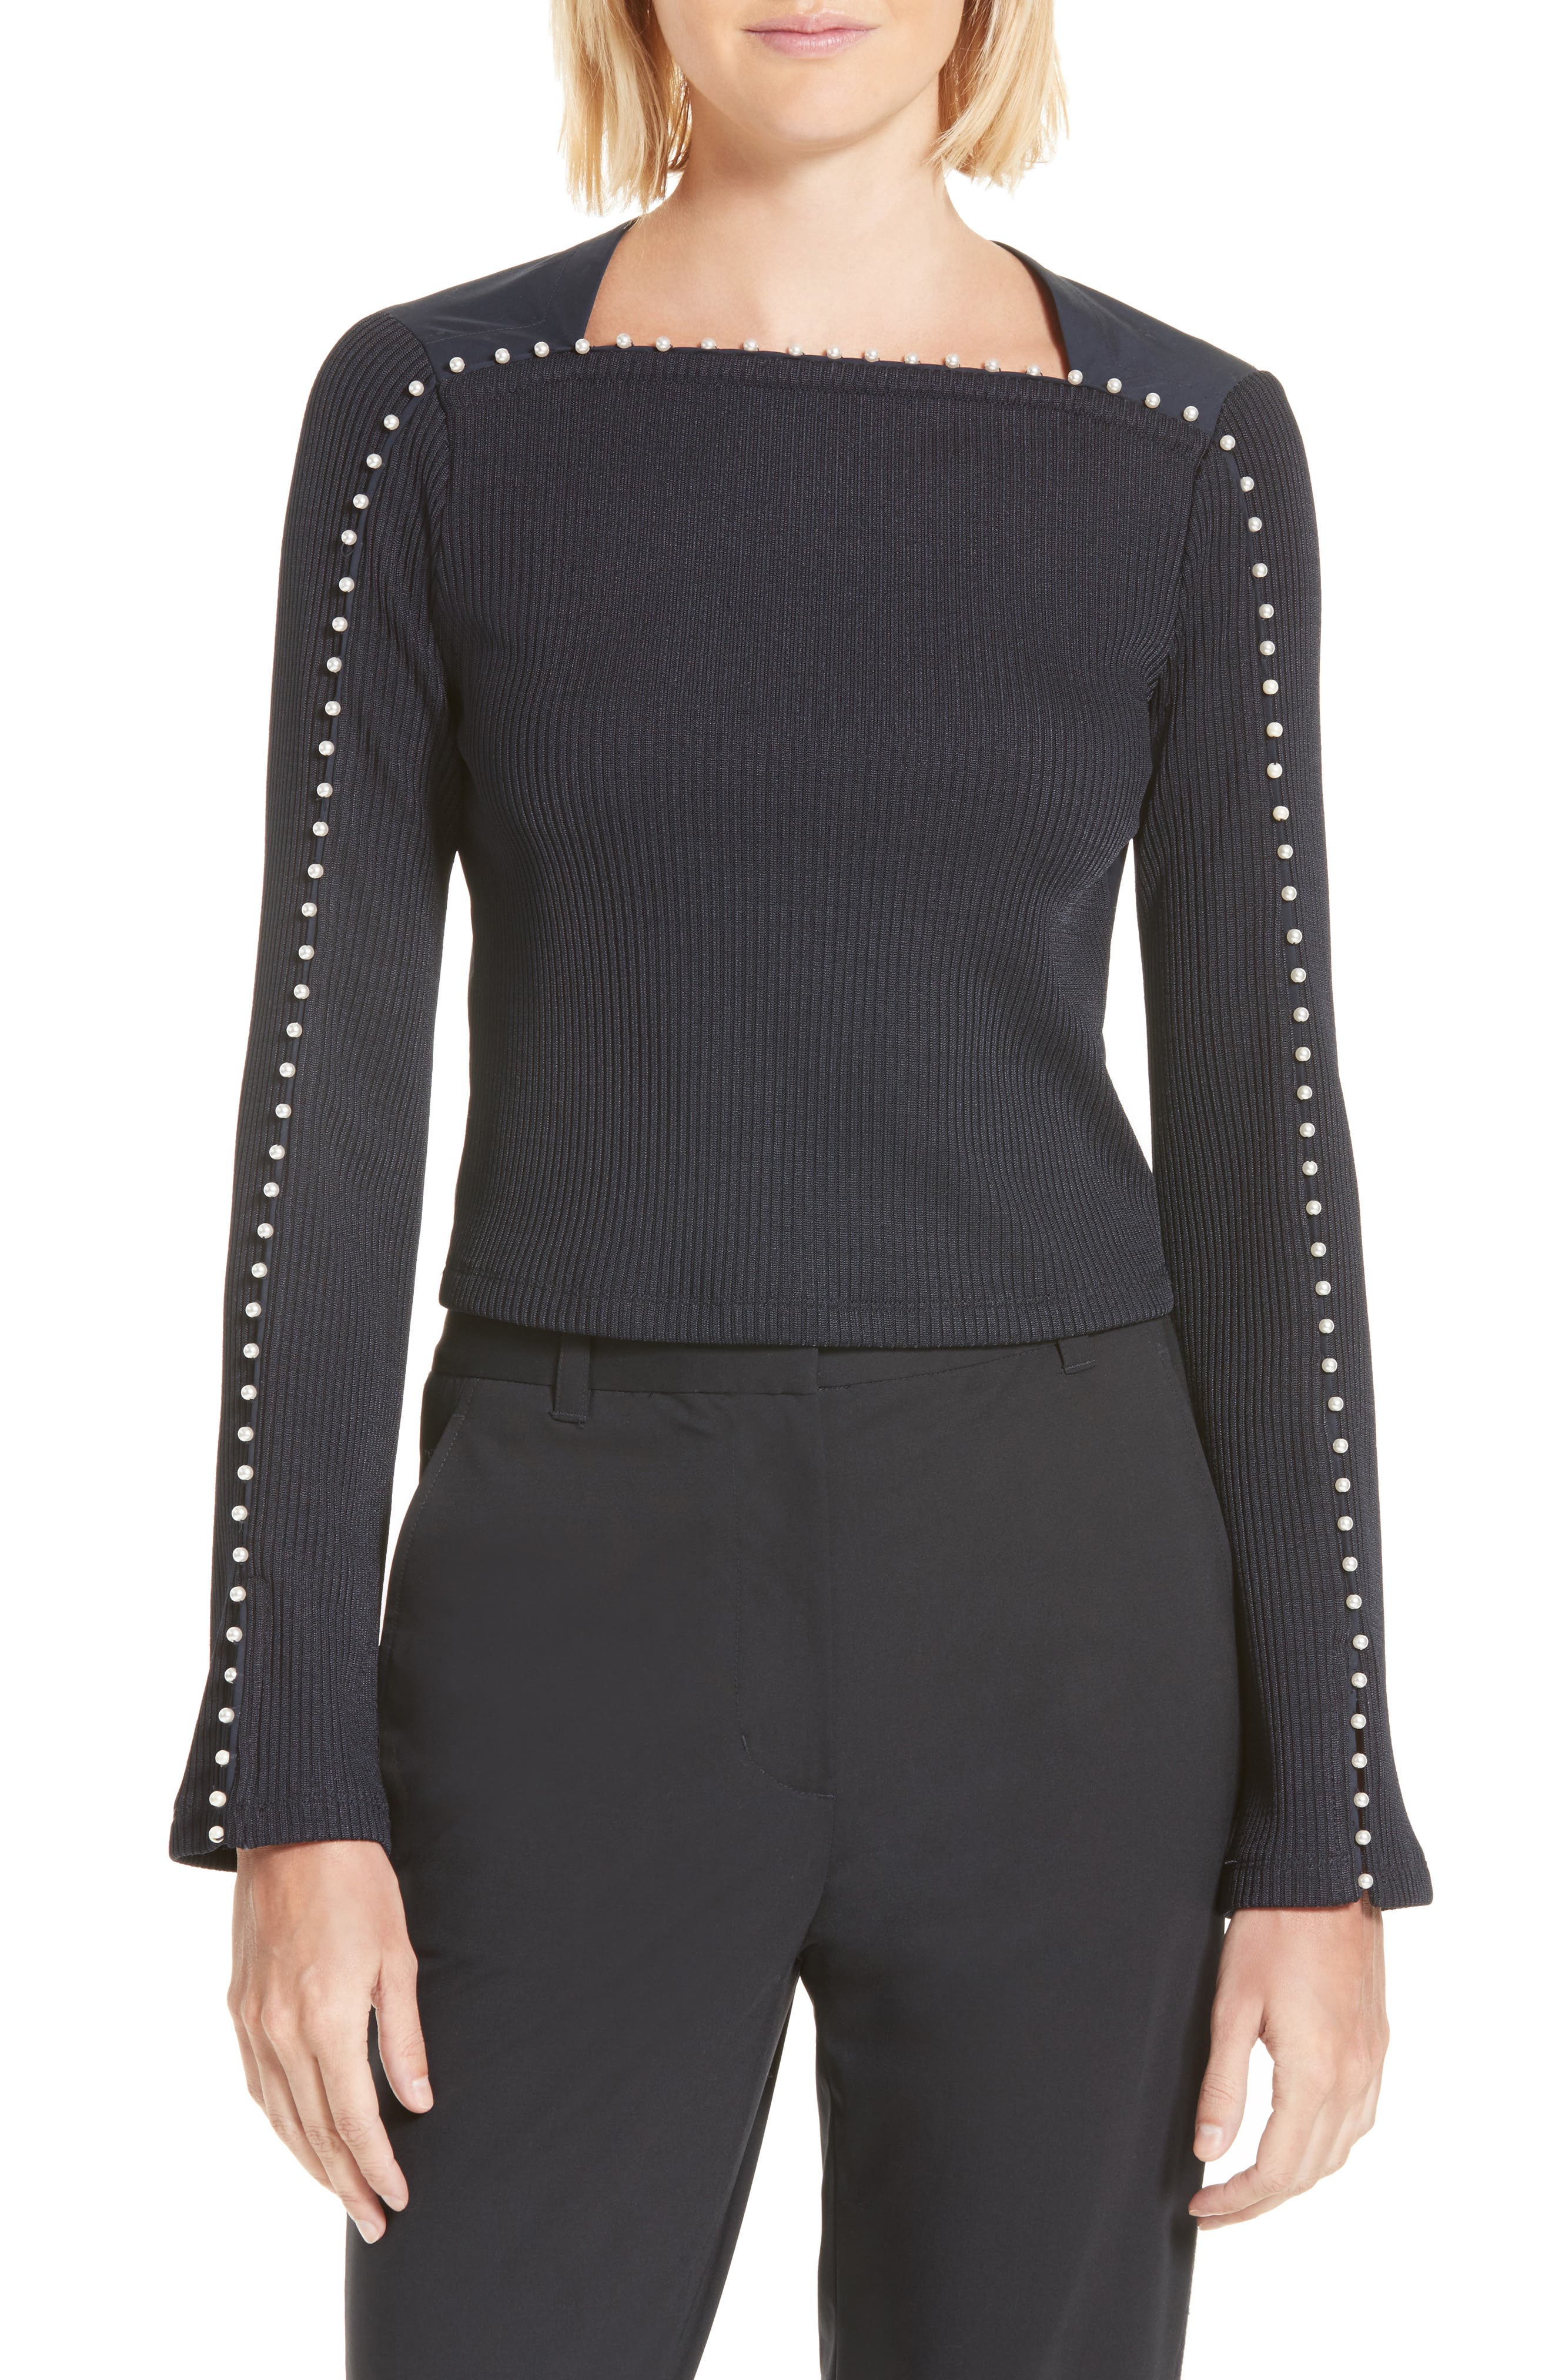 3.1 Phillip Lim Faux Pearl Trim Rib Knit Top